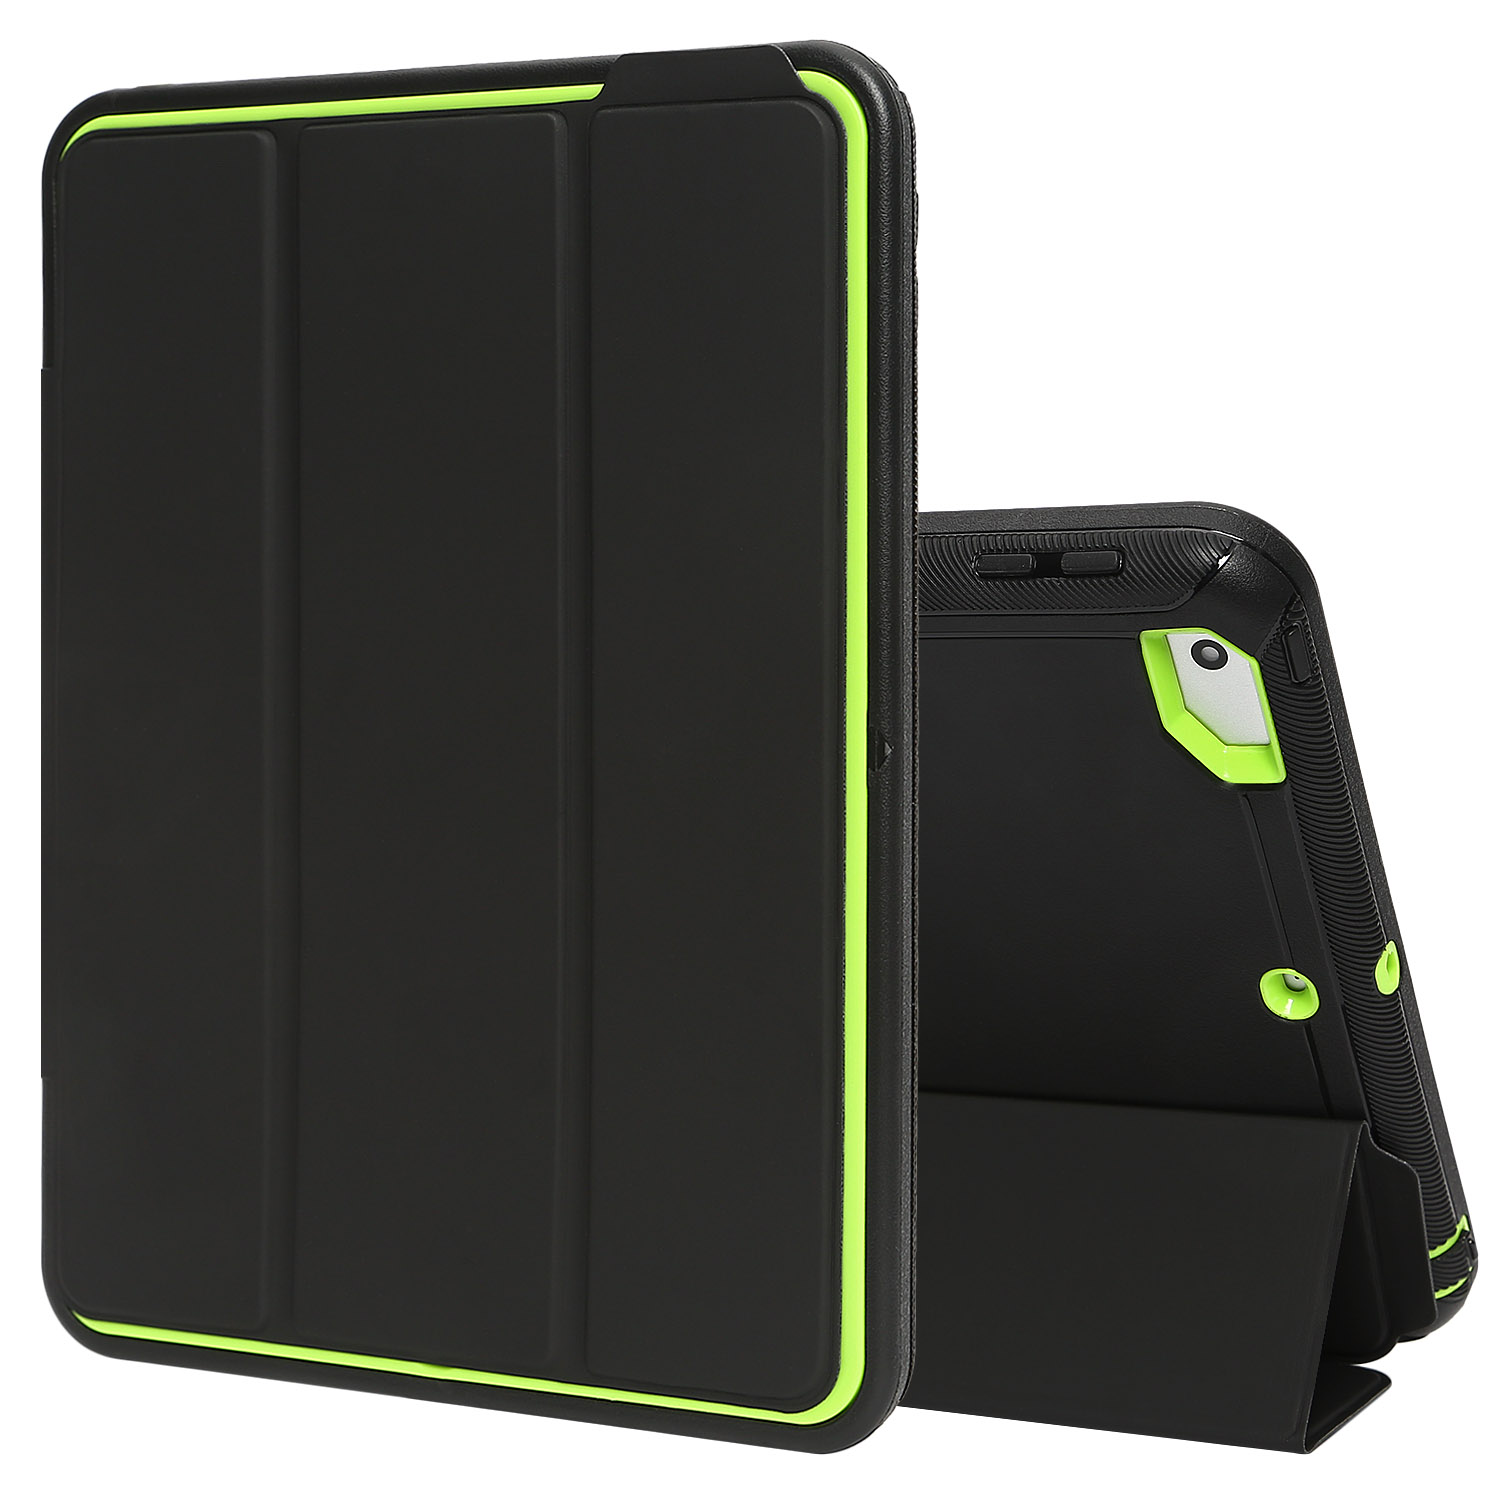 "TKOOFN Hybrid Shockproof Auto Sleep/Wake Function Heavy Duty Smart Case Cover for Apple 2017 New iPad 9.7""(A1822 A1823)"